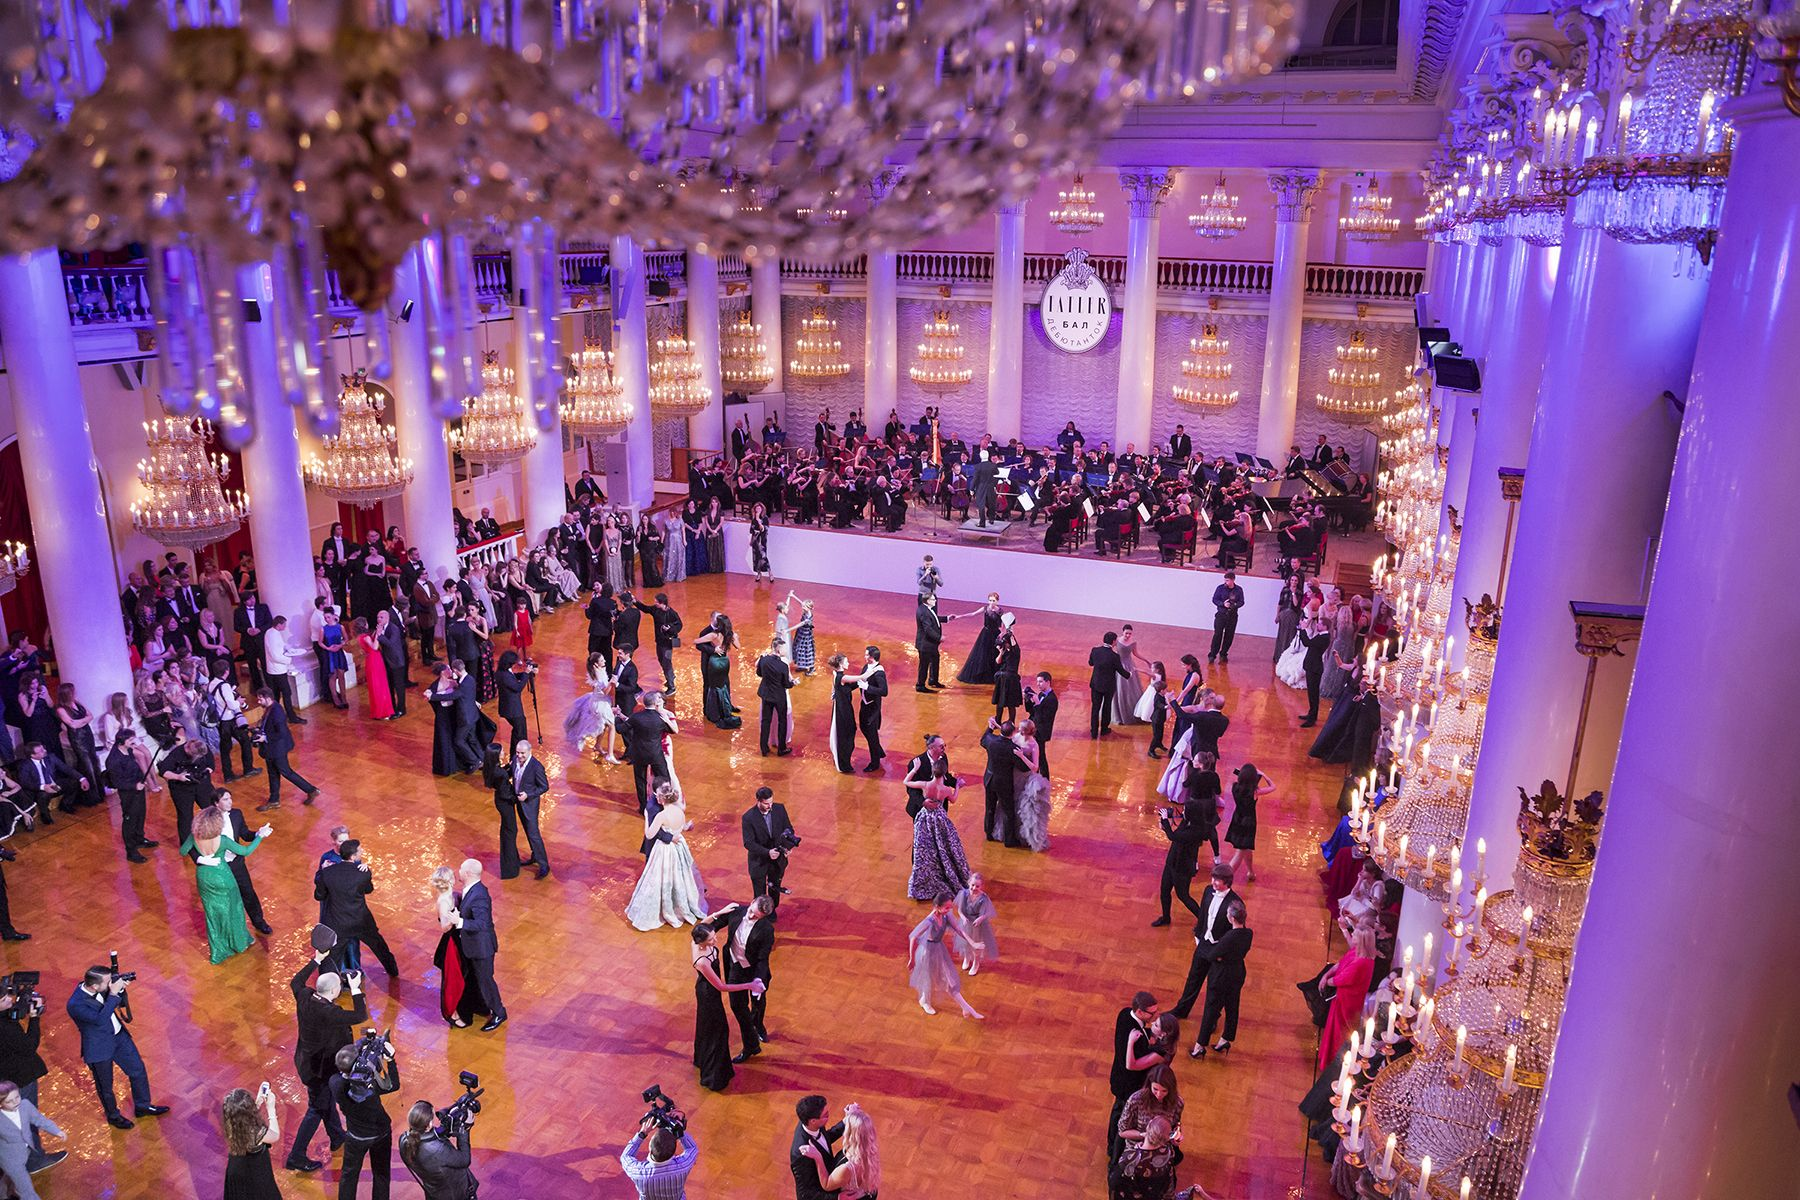 A choreographed waltz, the main event at Tatler's Debutante Ball, in the Pillar Hall at the Palace of Unions, Moscow, 2014. During the Soviet era, the hall was used to display bodies of deceased leaders, including Lenin and Stalin, before their state funerals.